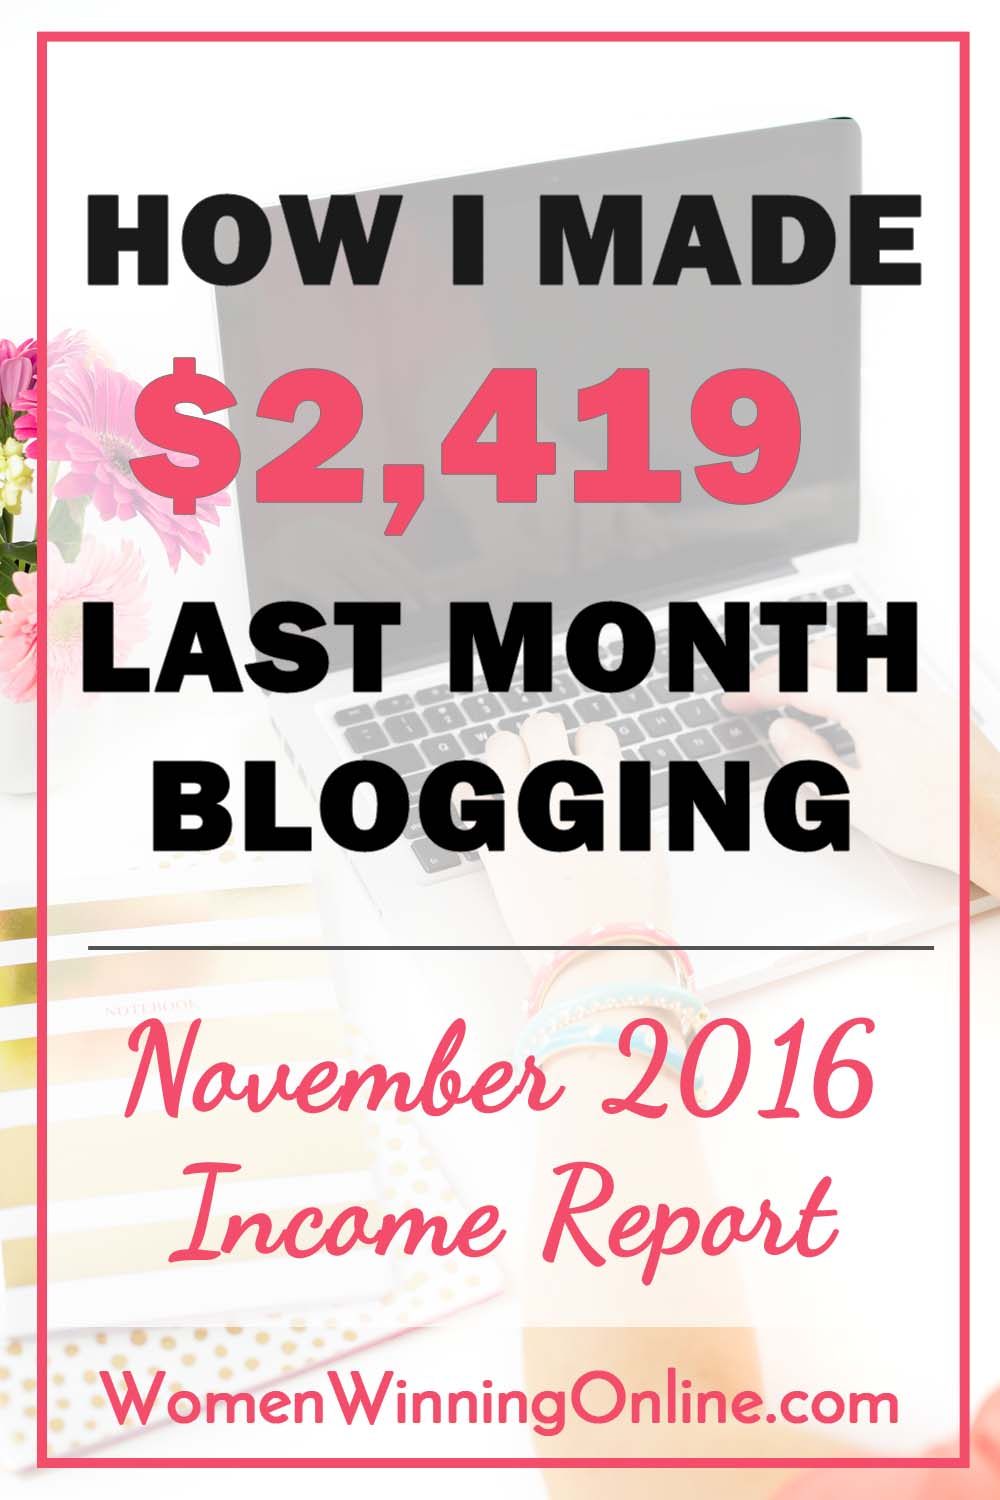 November 2016 blog income report